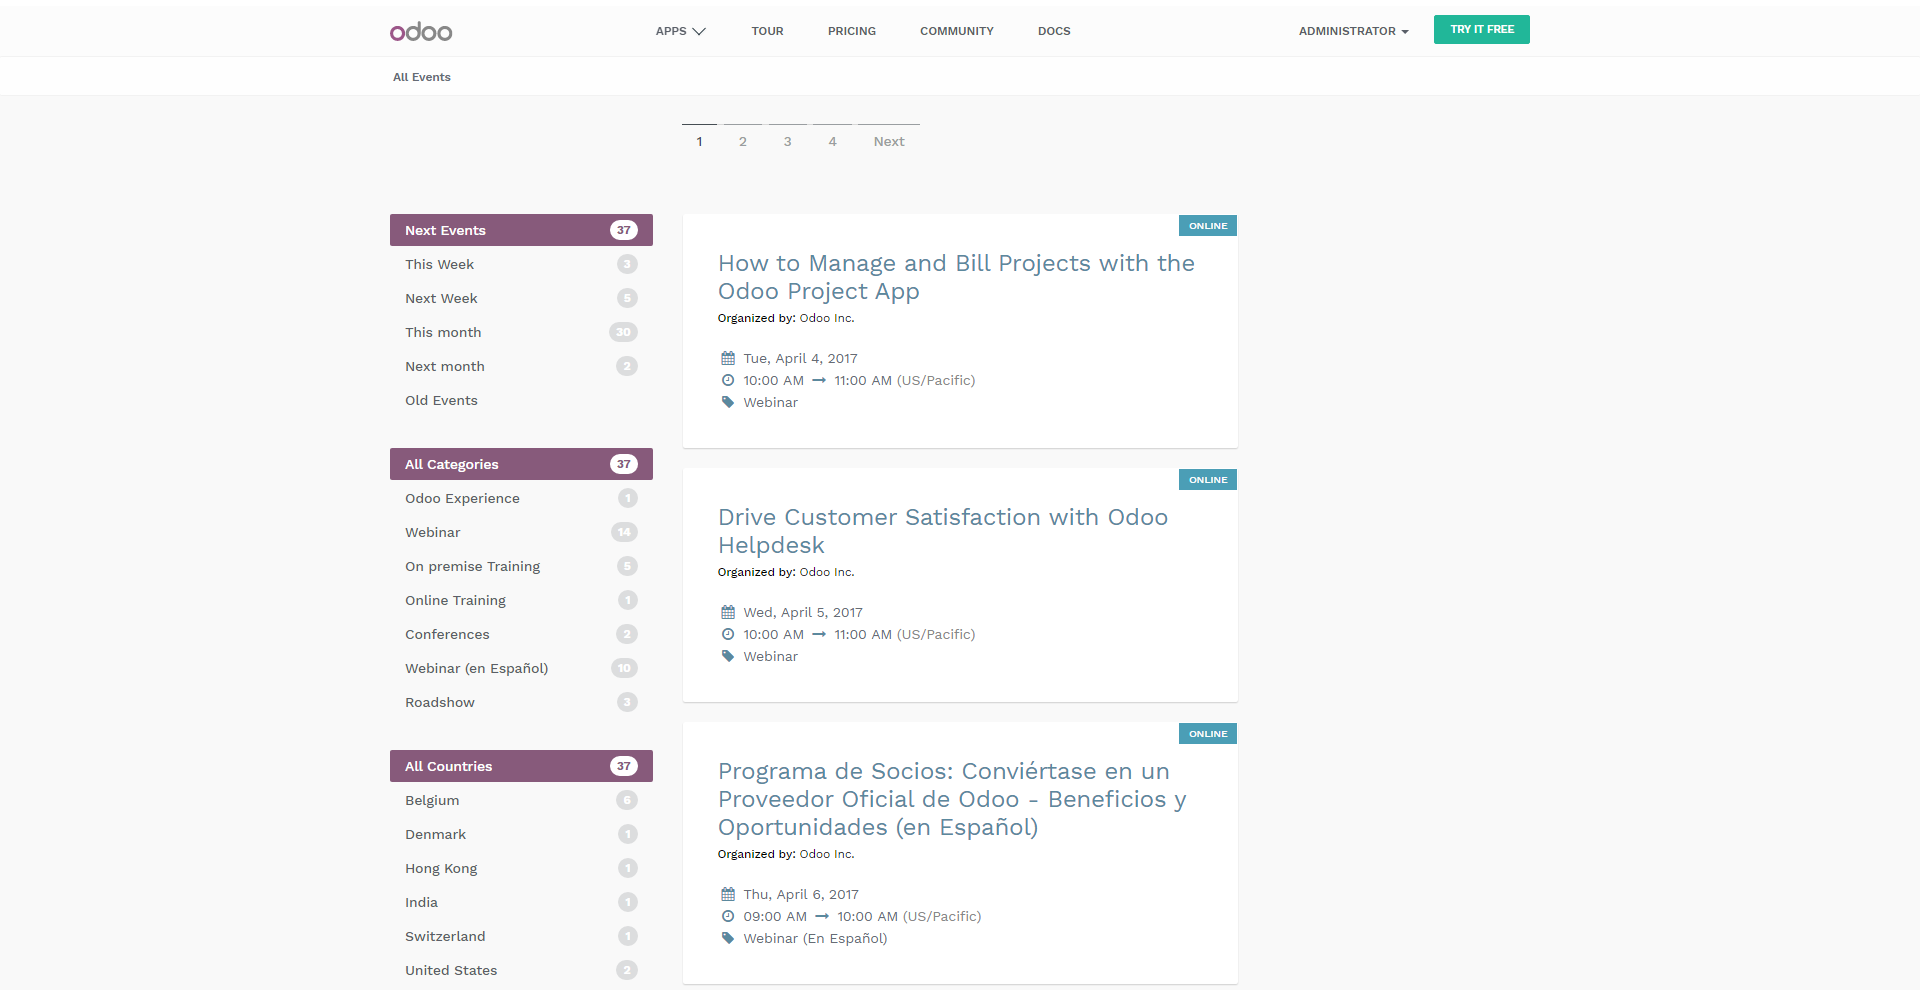 Odoo Events Demo - Odoo Events - All Events Webpage